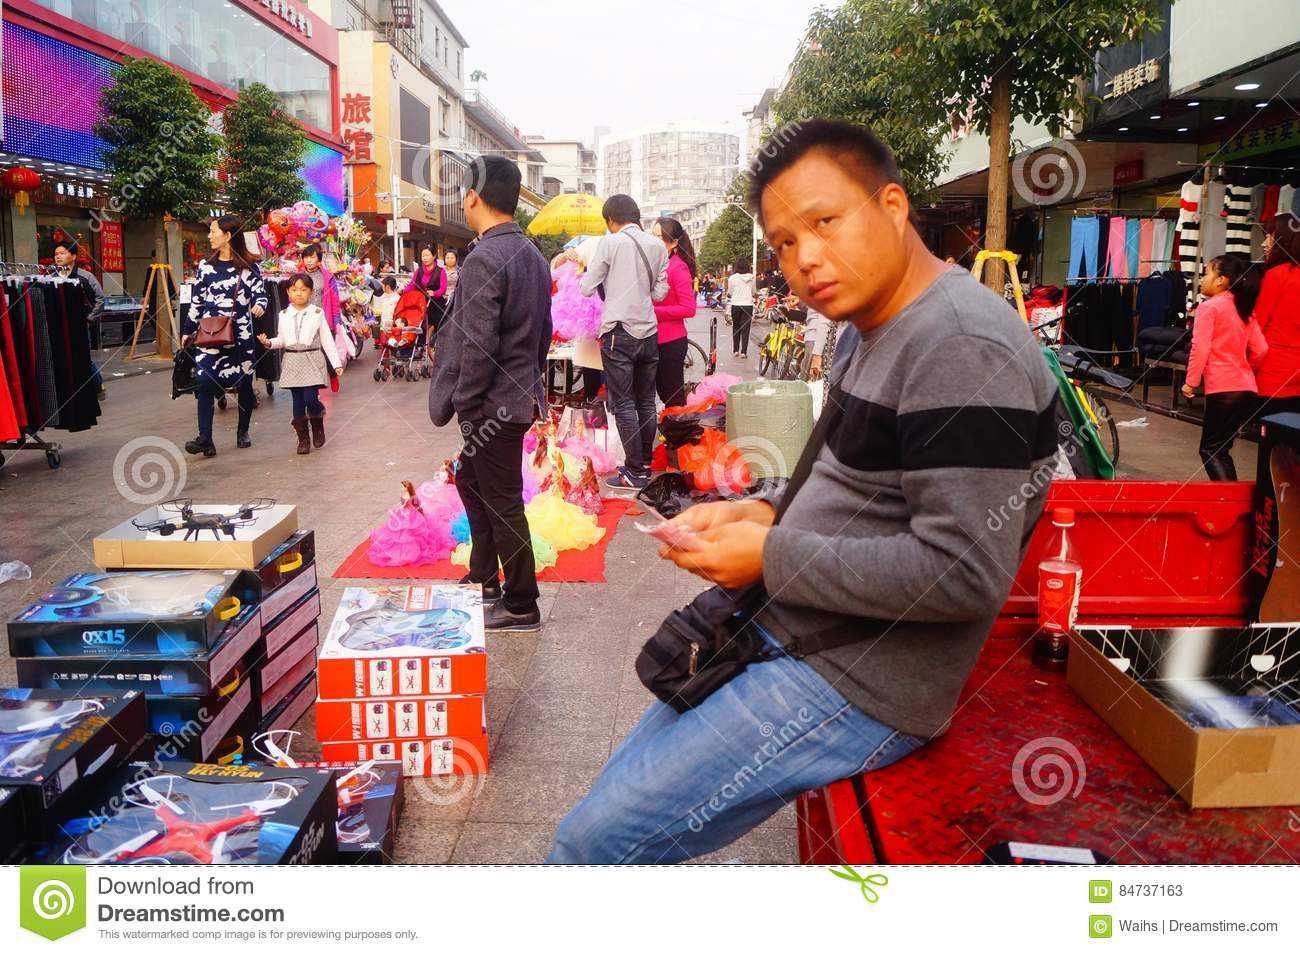 Shenzhen, China: stalls on pedestrian street, sale of handicrafts and other commodities